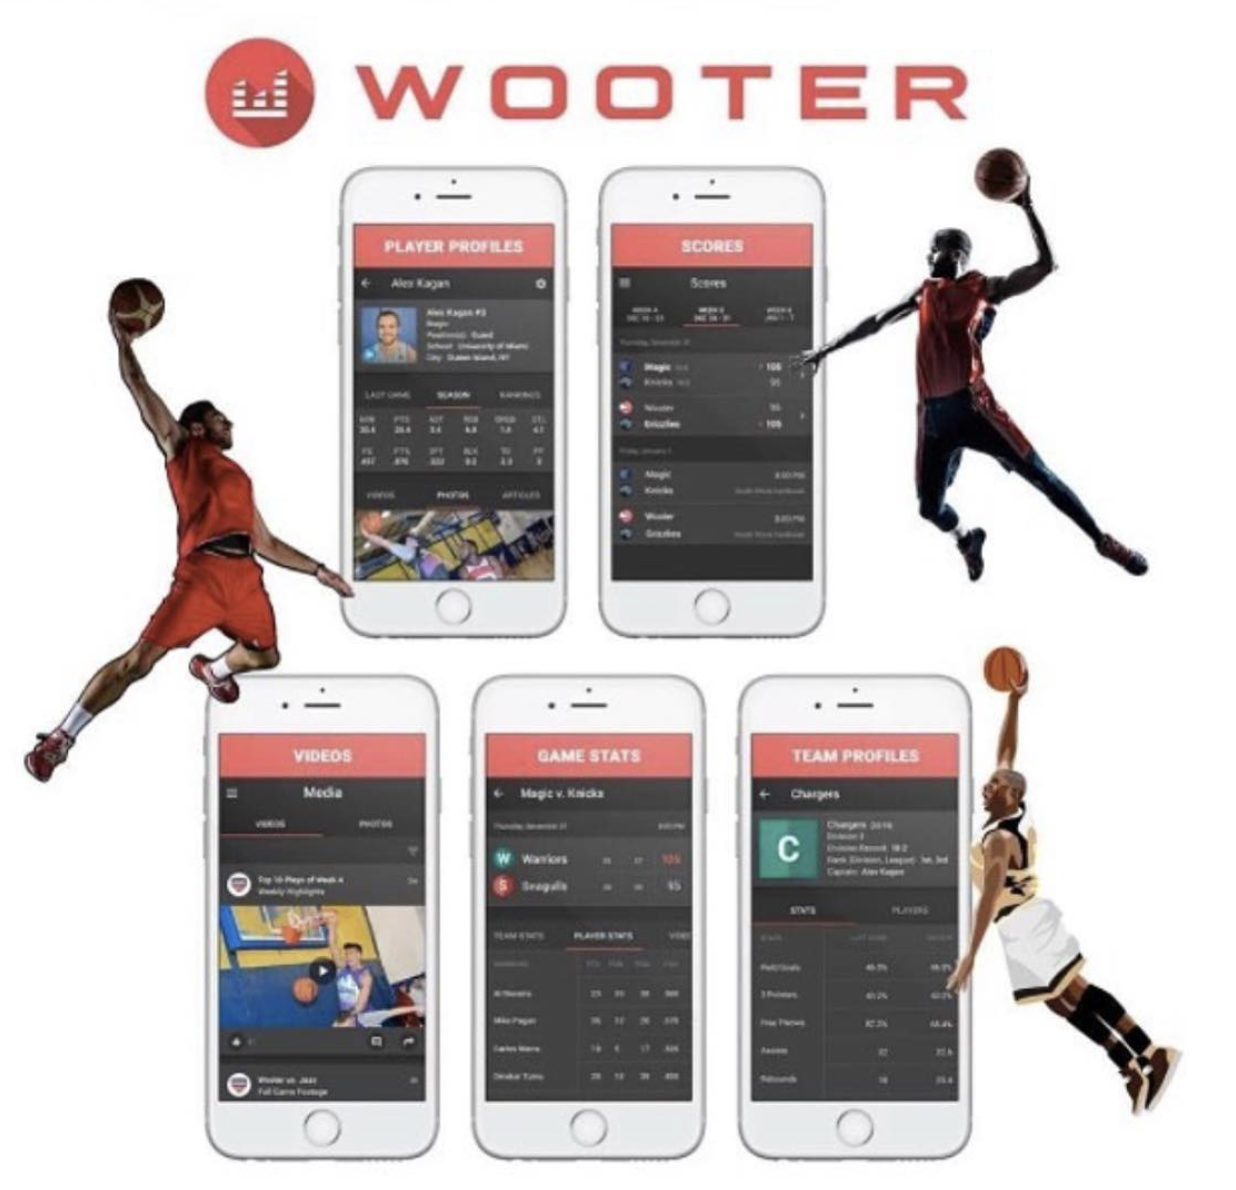 Since first launching the Wooter App, over 20 custom apps have been built, 1000+ leagues created, and 100,000+ users signed up to help manage their team, league, or tournament.